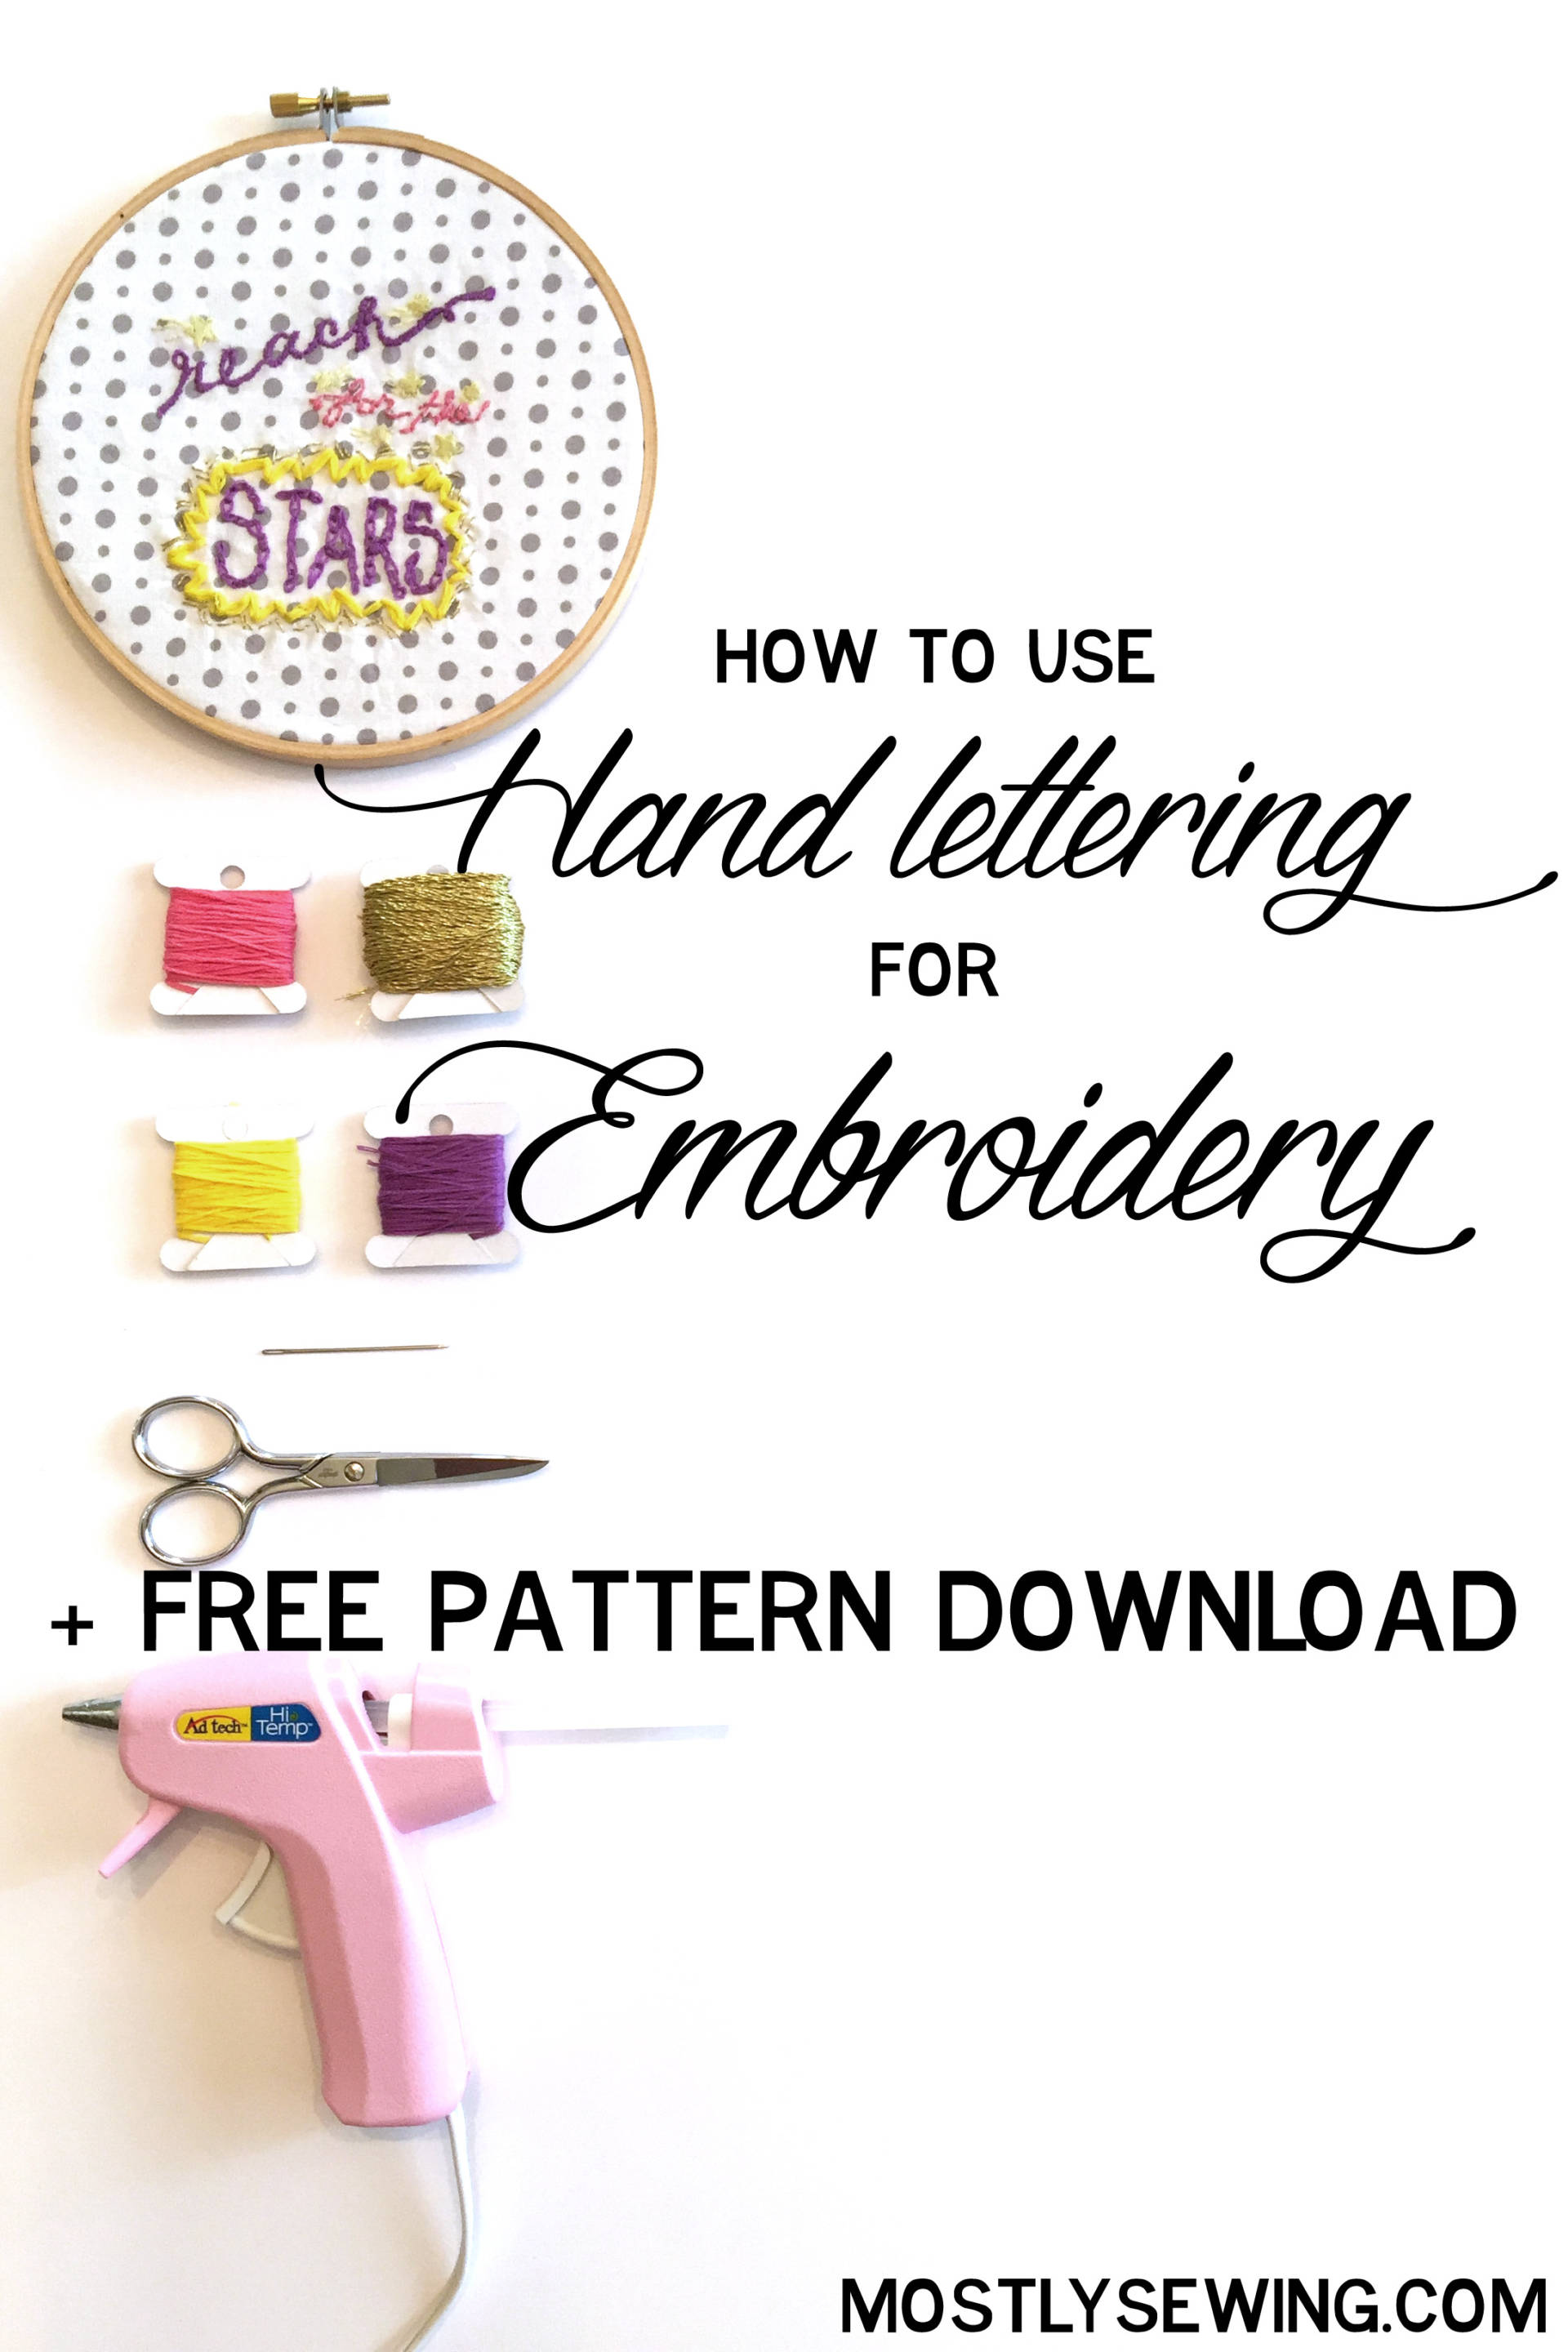 free embroidery pattern download